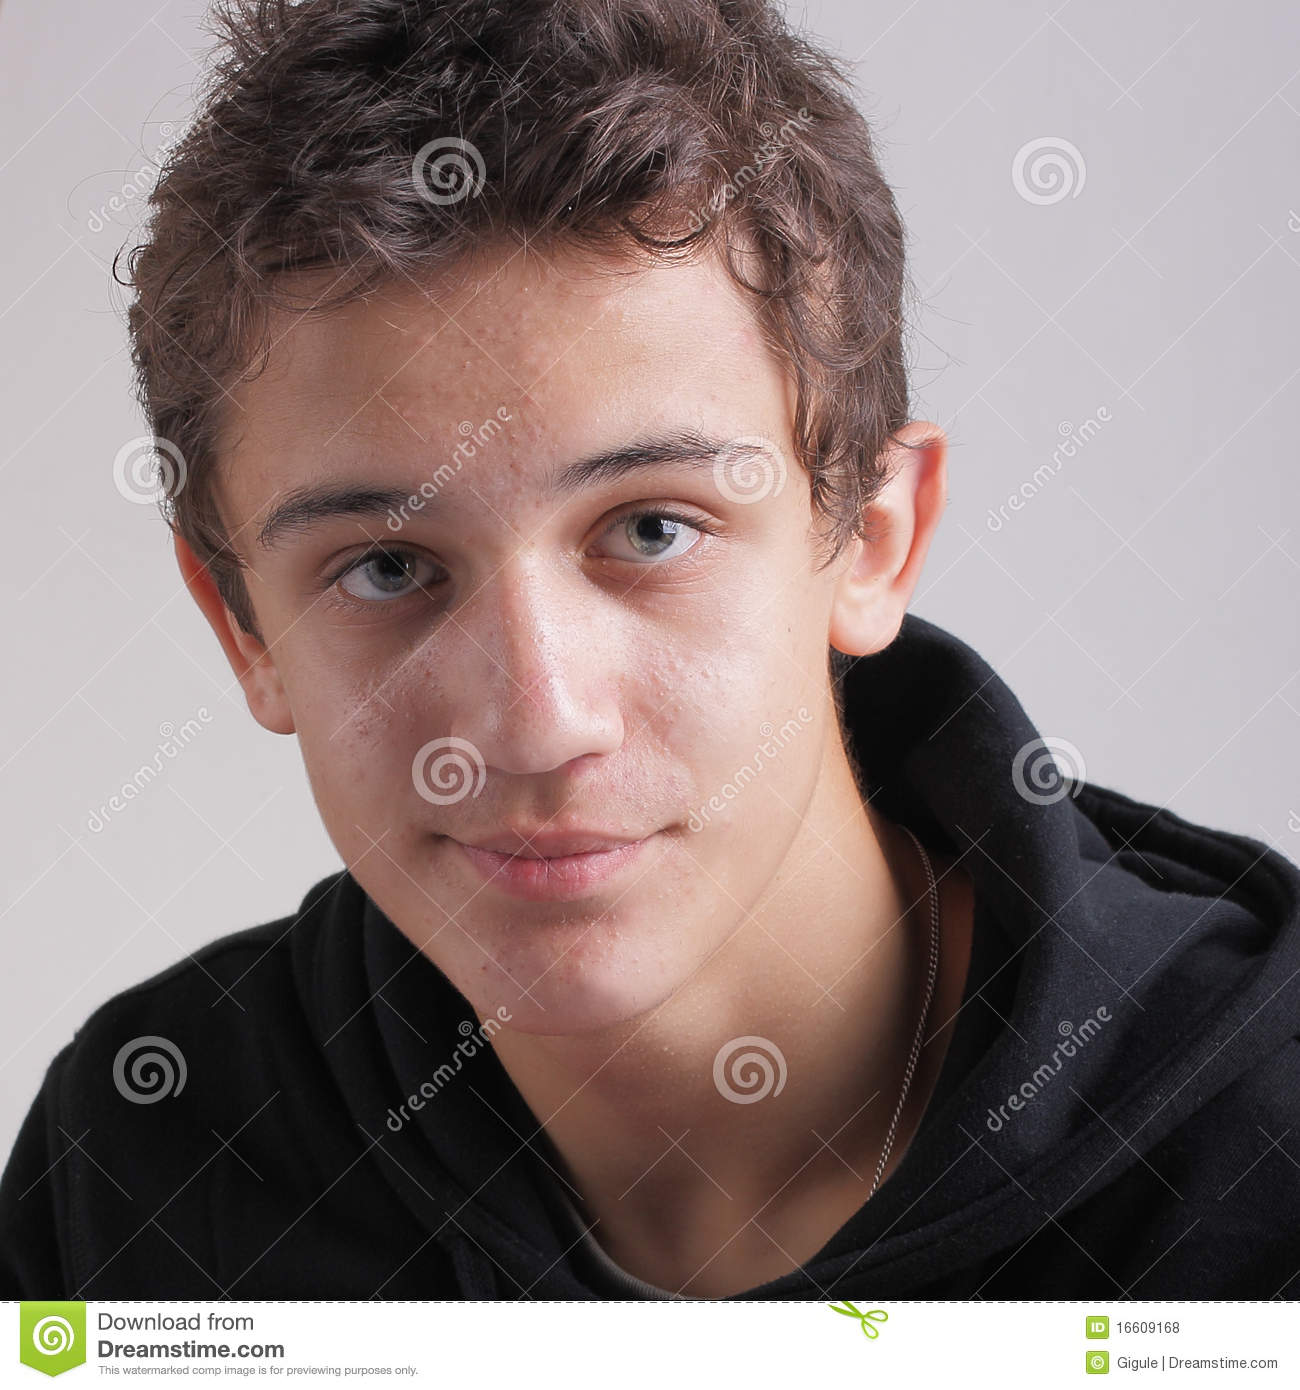 Teens And Acne Royalty Free Stock Photos - Image: 16609168